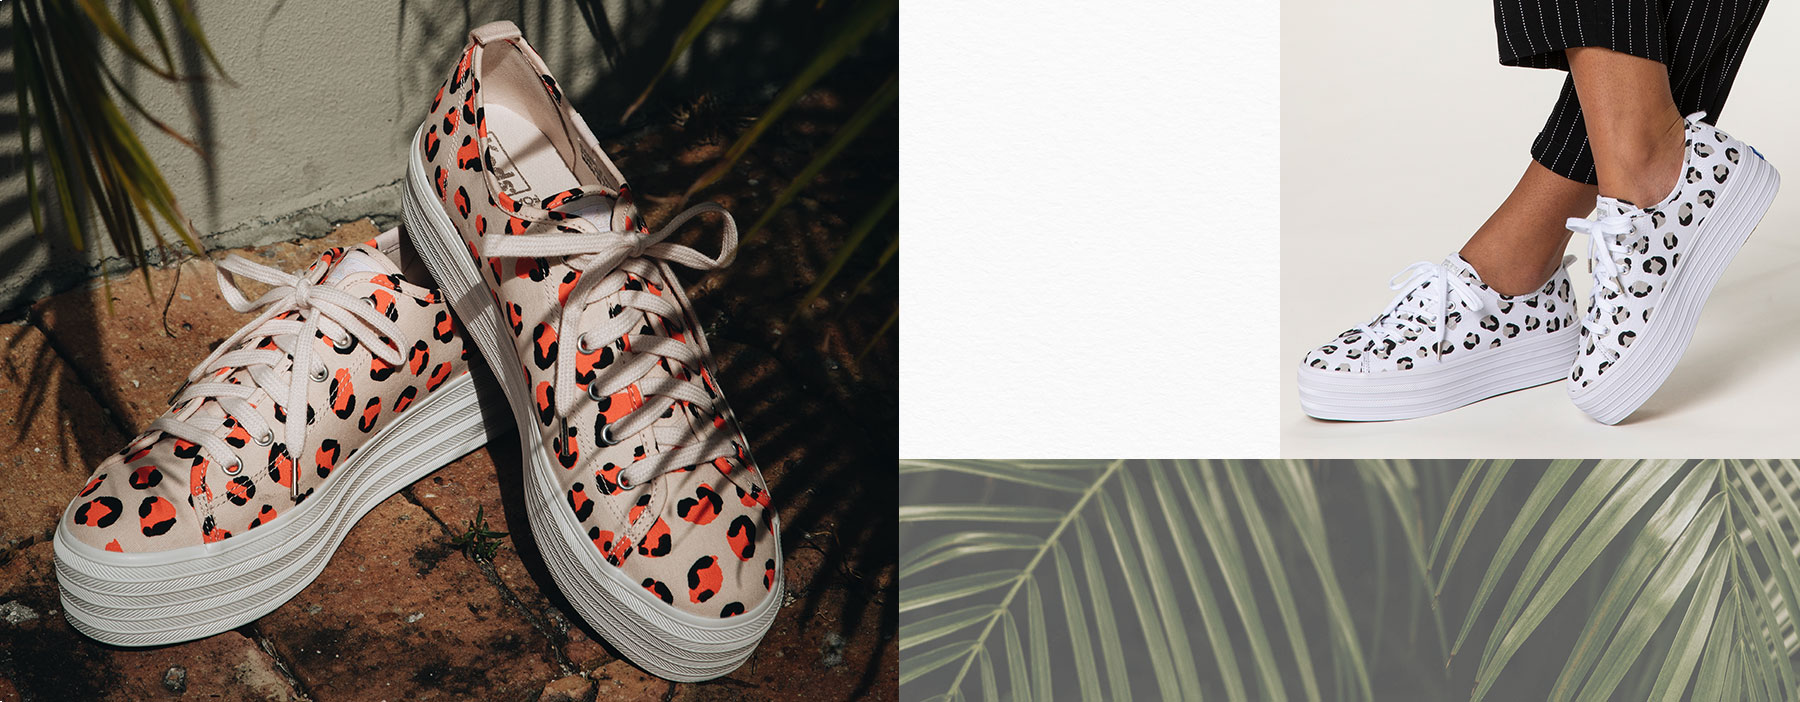 Palm trees and printed pairs of Keds shoes.